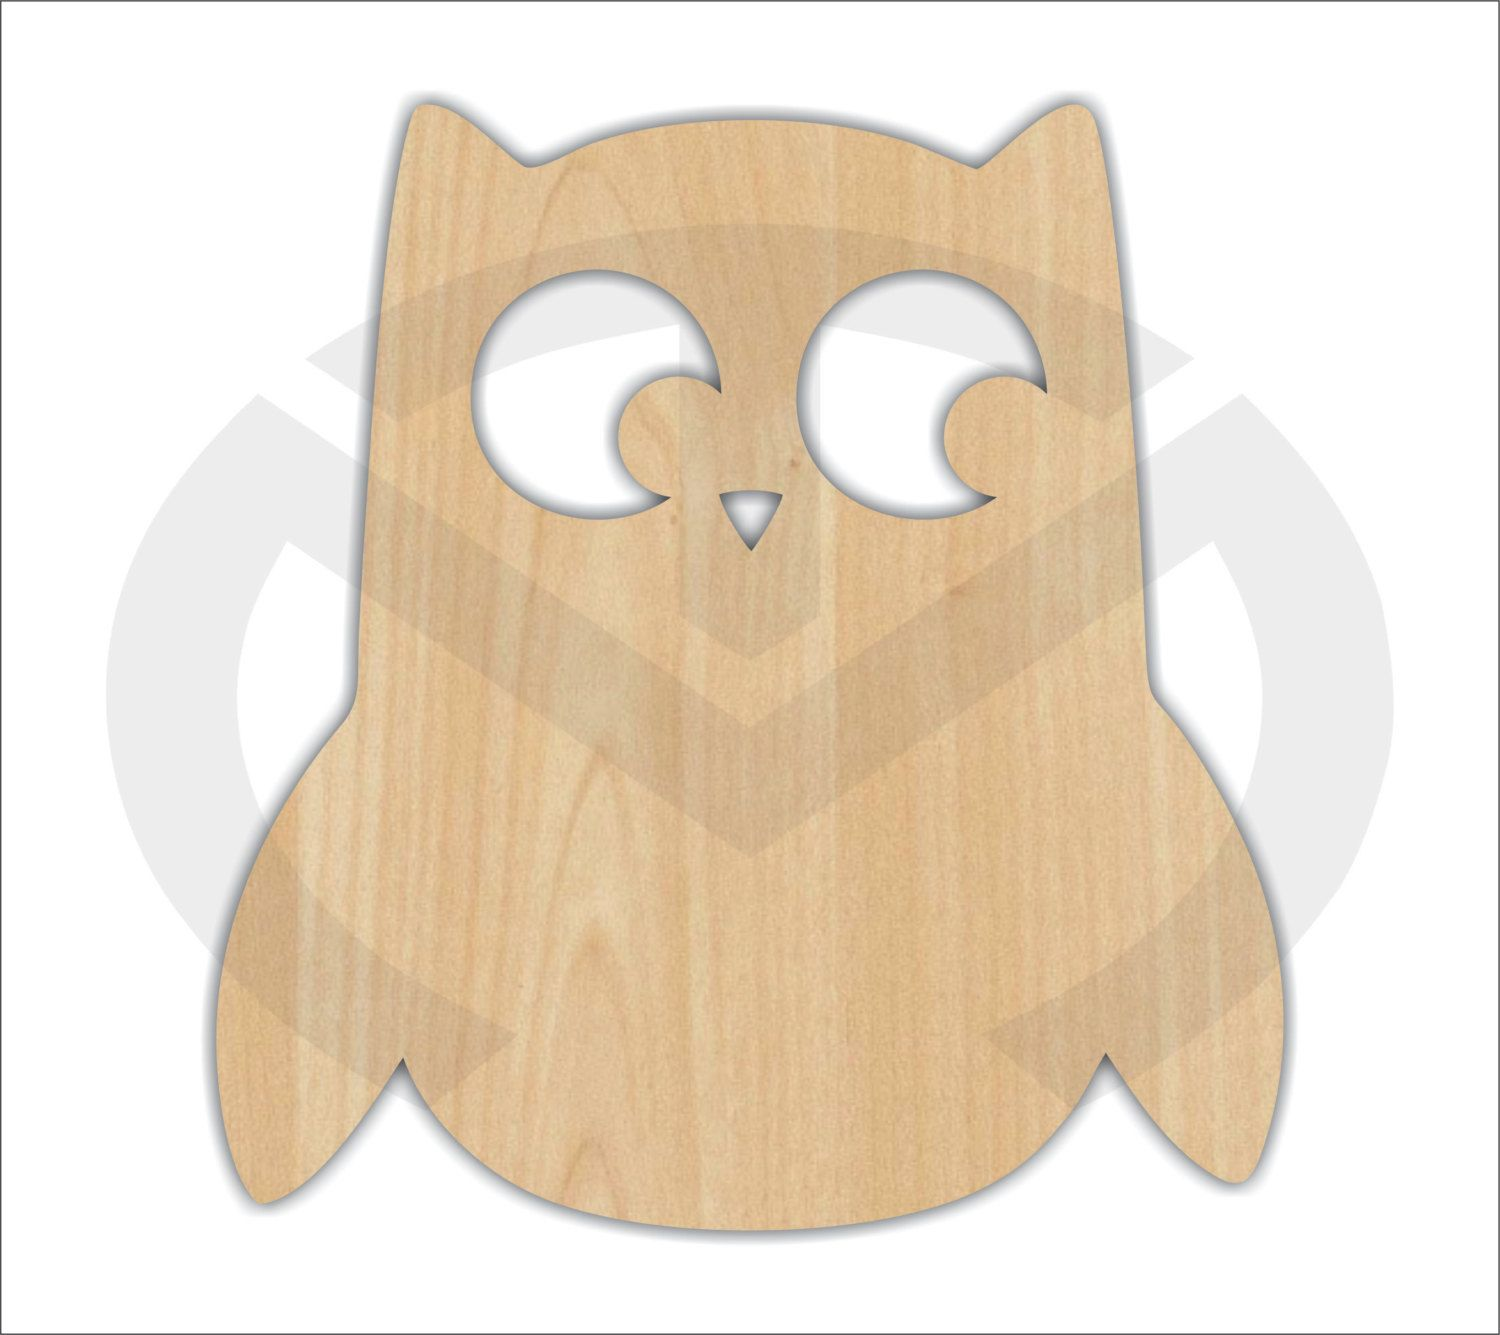 Unfinished Wood Owl With Face Cut Out Laser Cutout Wreath Accent Door Hanger  Ready To Paint U0026 Personalize Various Sizes (smaller)